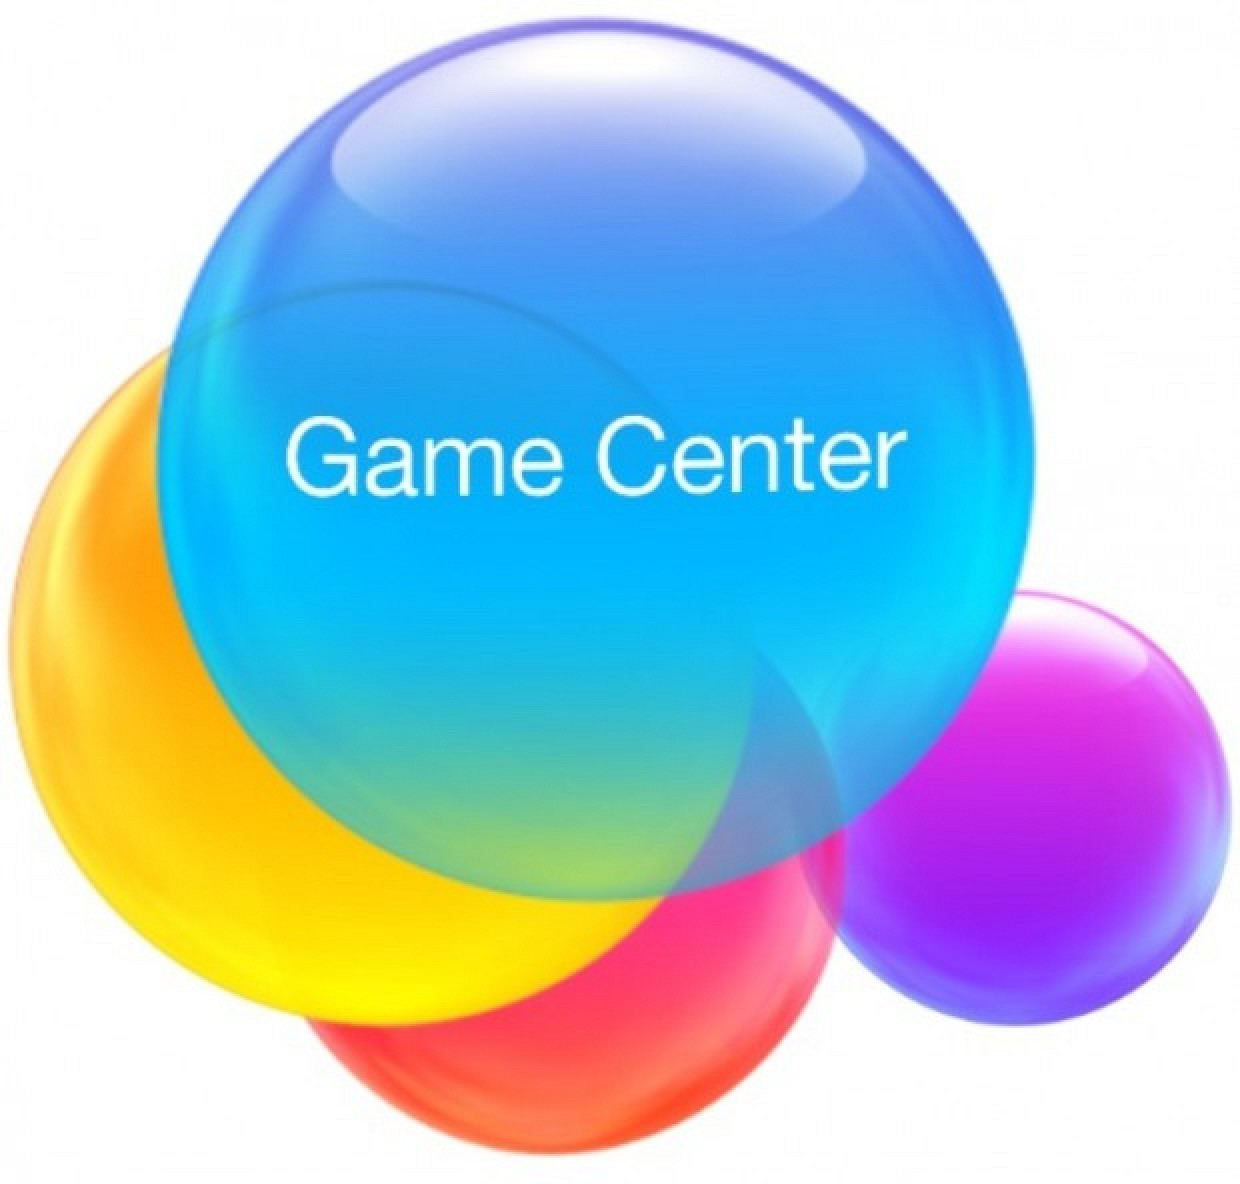 [Update] Apple finally fixes the dreaded white screen of death in Game Center with iOS 9.3.2